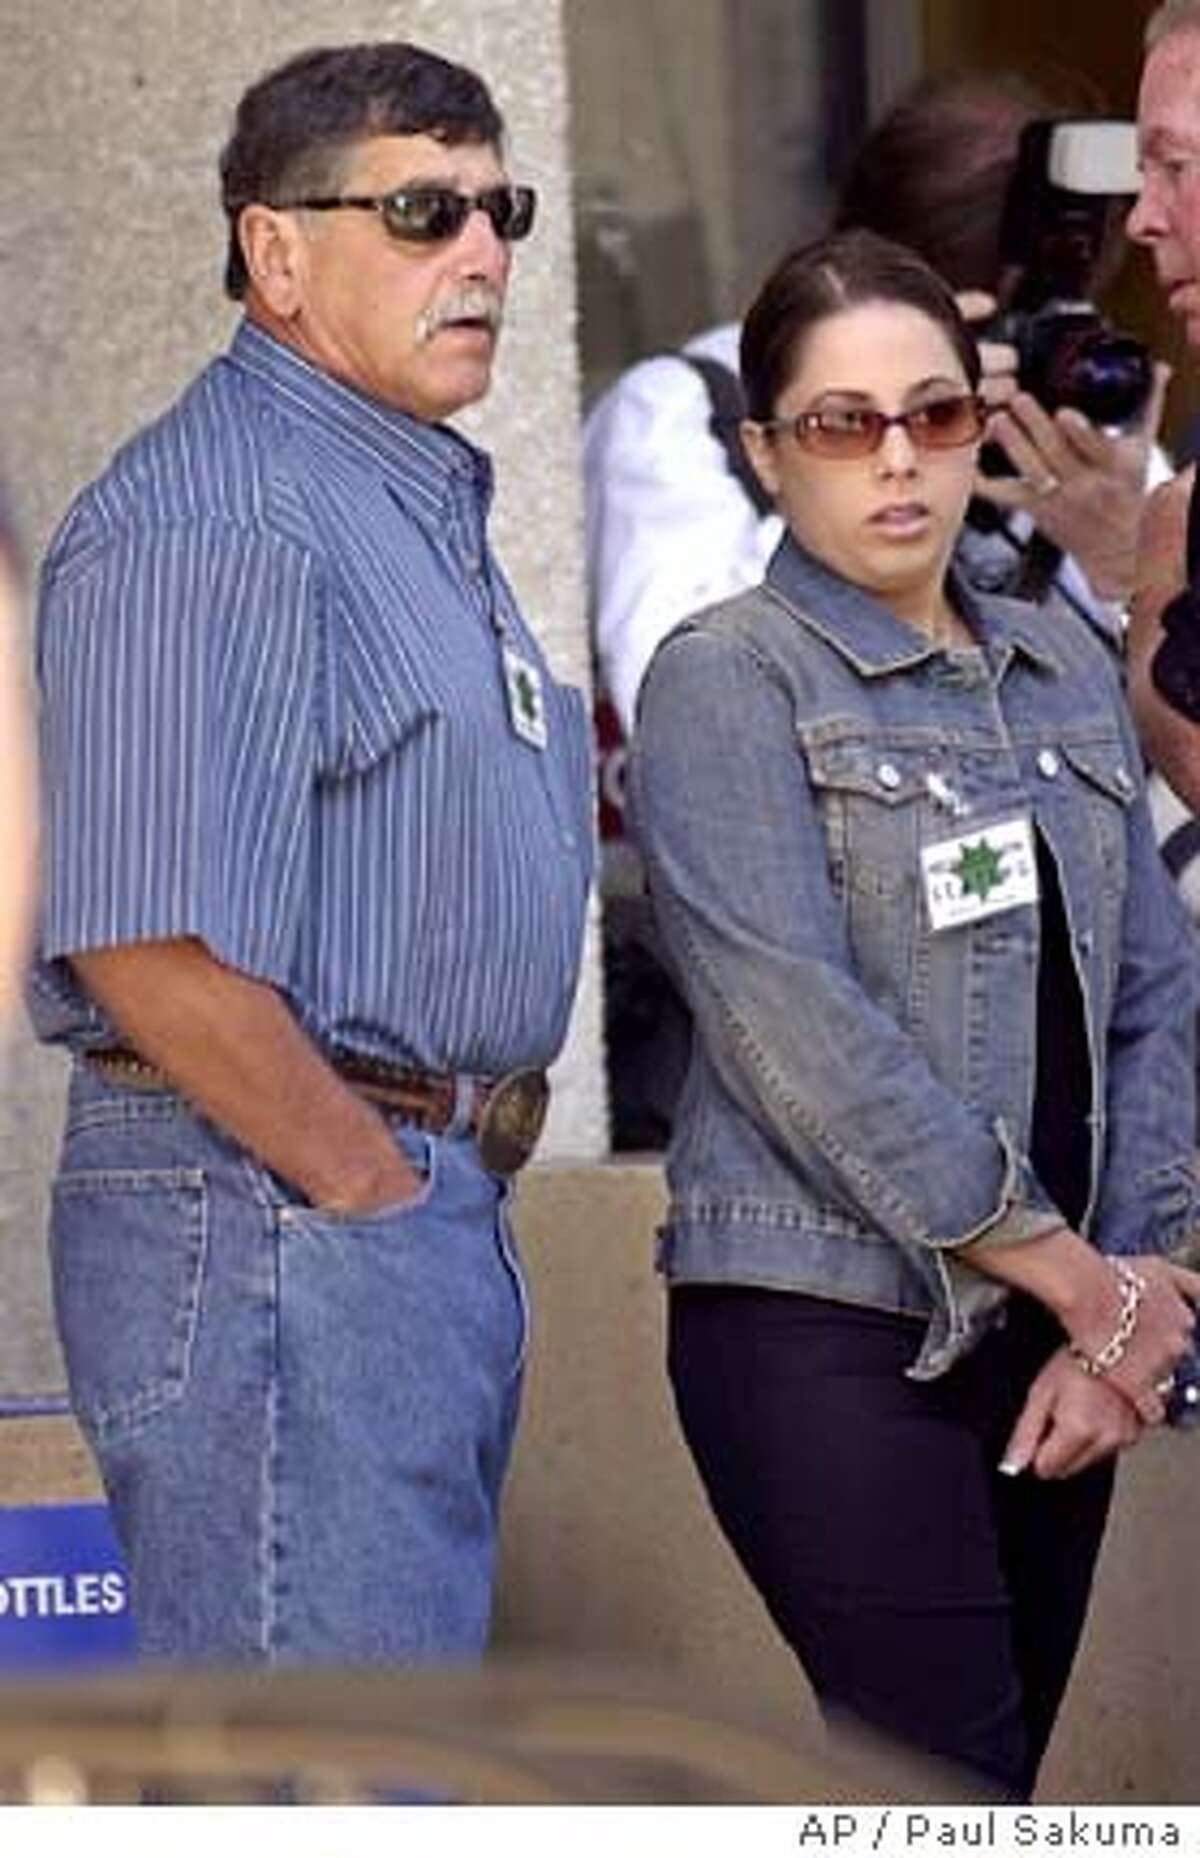 Dennis Rocha, left, father of , arrives with an unidentified woman for the Scott Peterson trial in Redwood City, Calif., Wednesday, June 2, 2004. Peterson is the Modesto, Calif., man who could face the death penalty if convicted of two counts of murder for the deaths of his wife, , and their unborn child. (AP Photo/Paul Sakuma)